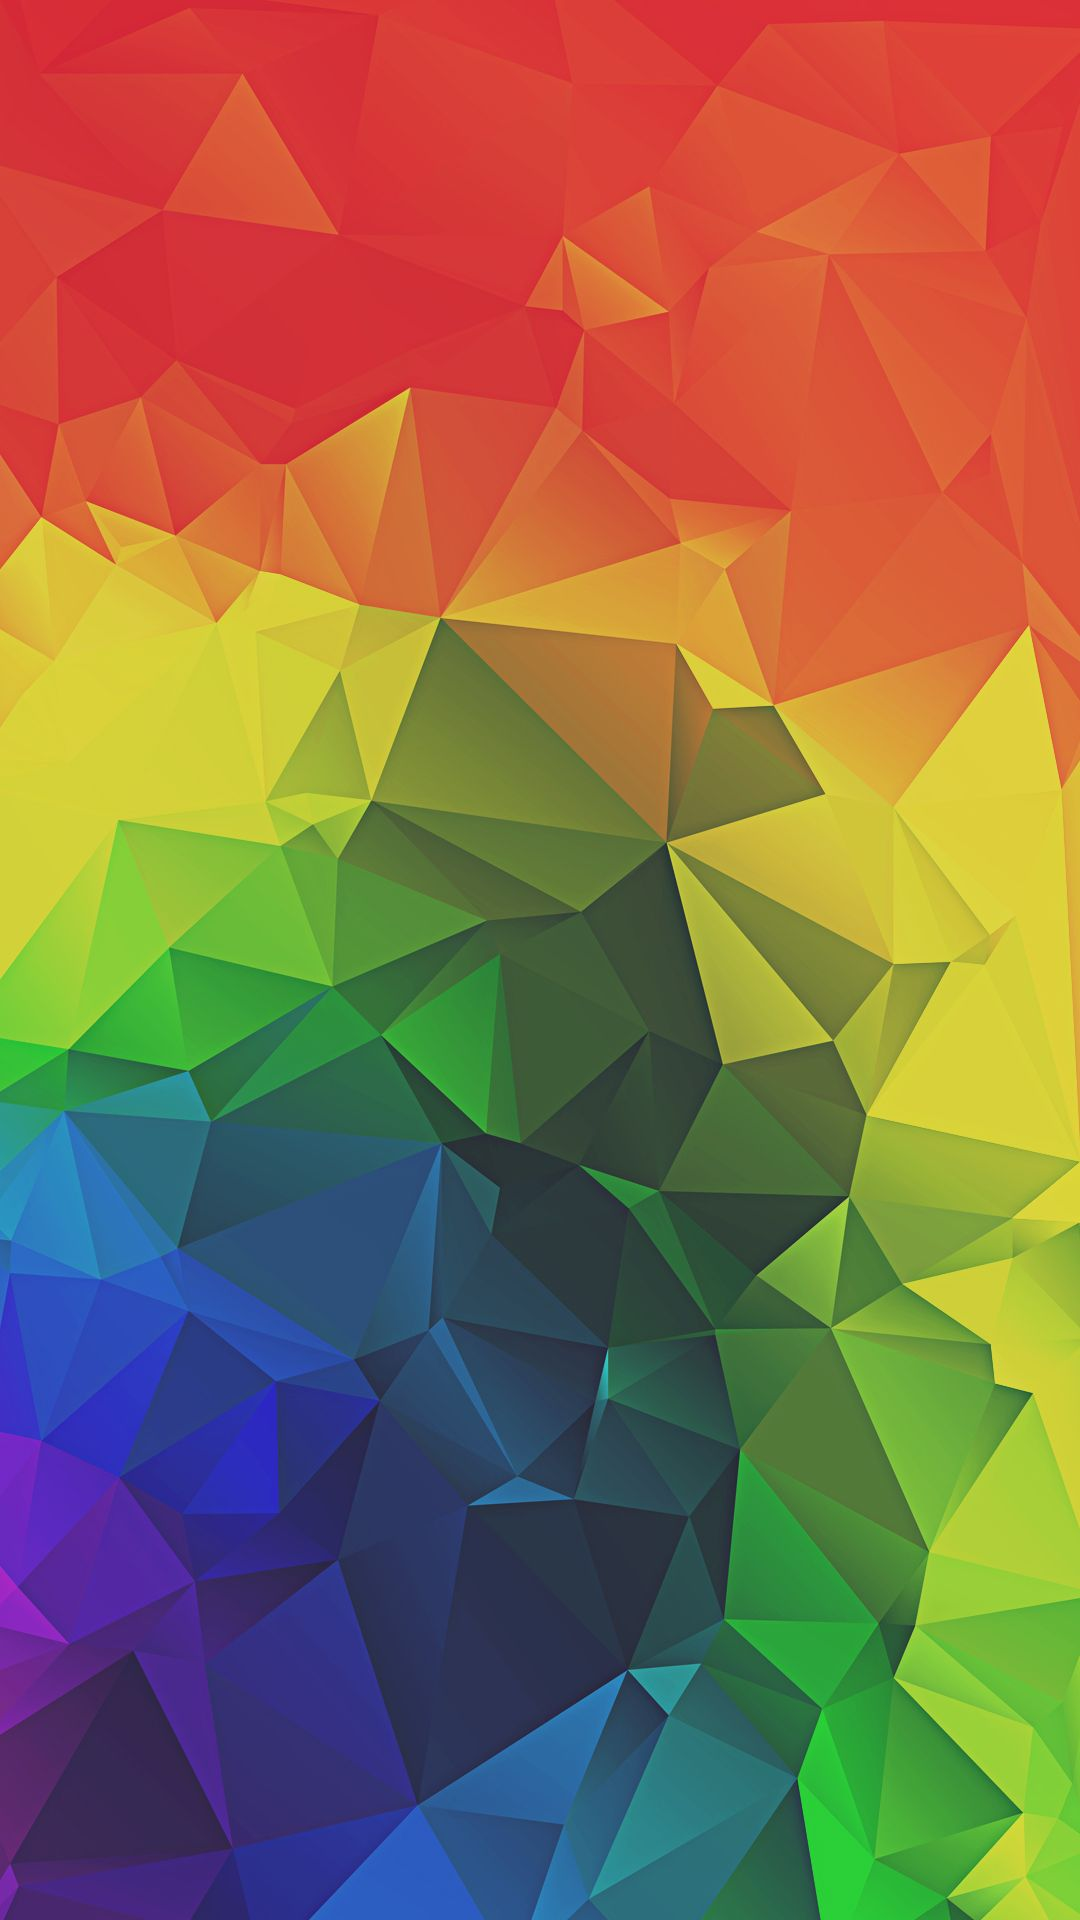 rainbow triangles abstract iphone 6 hd wallpaper